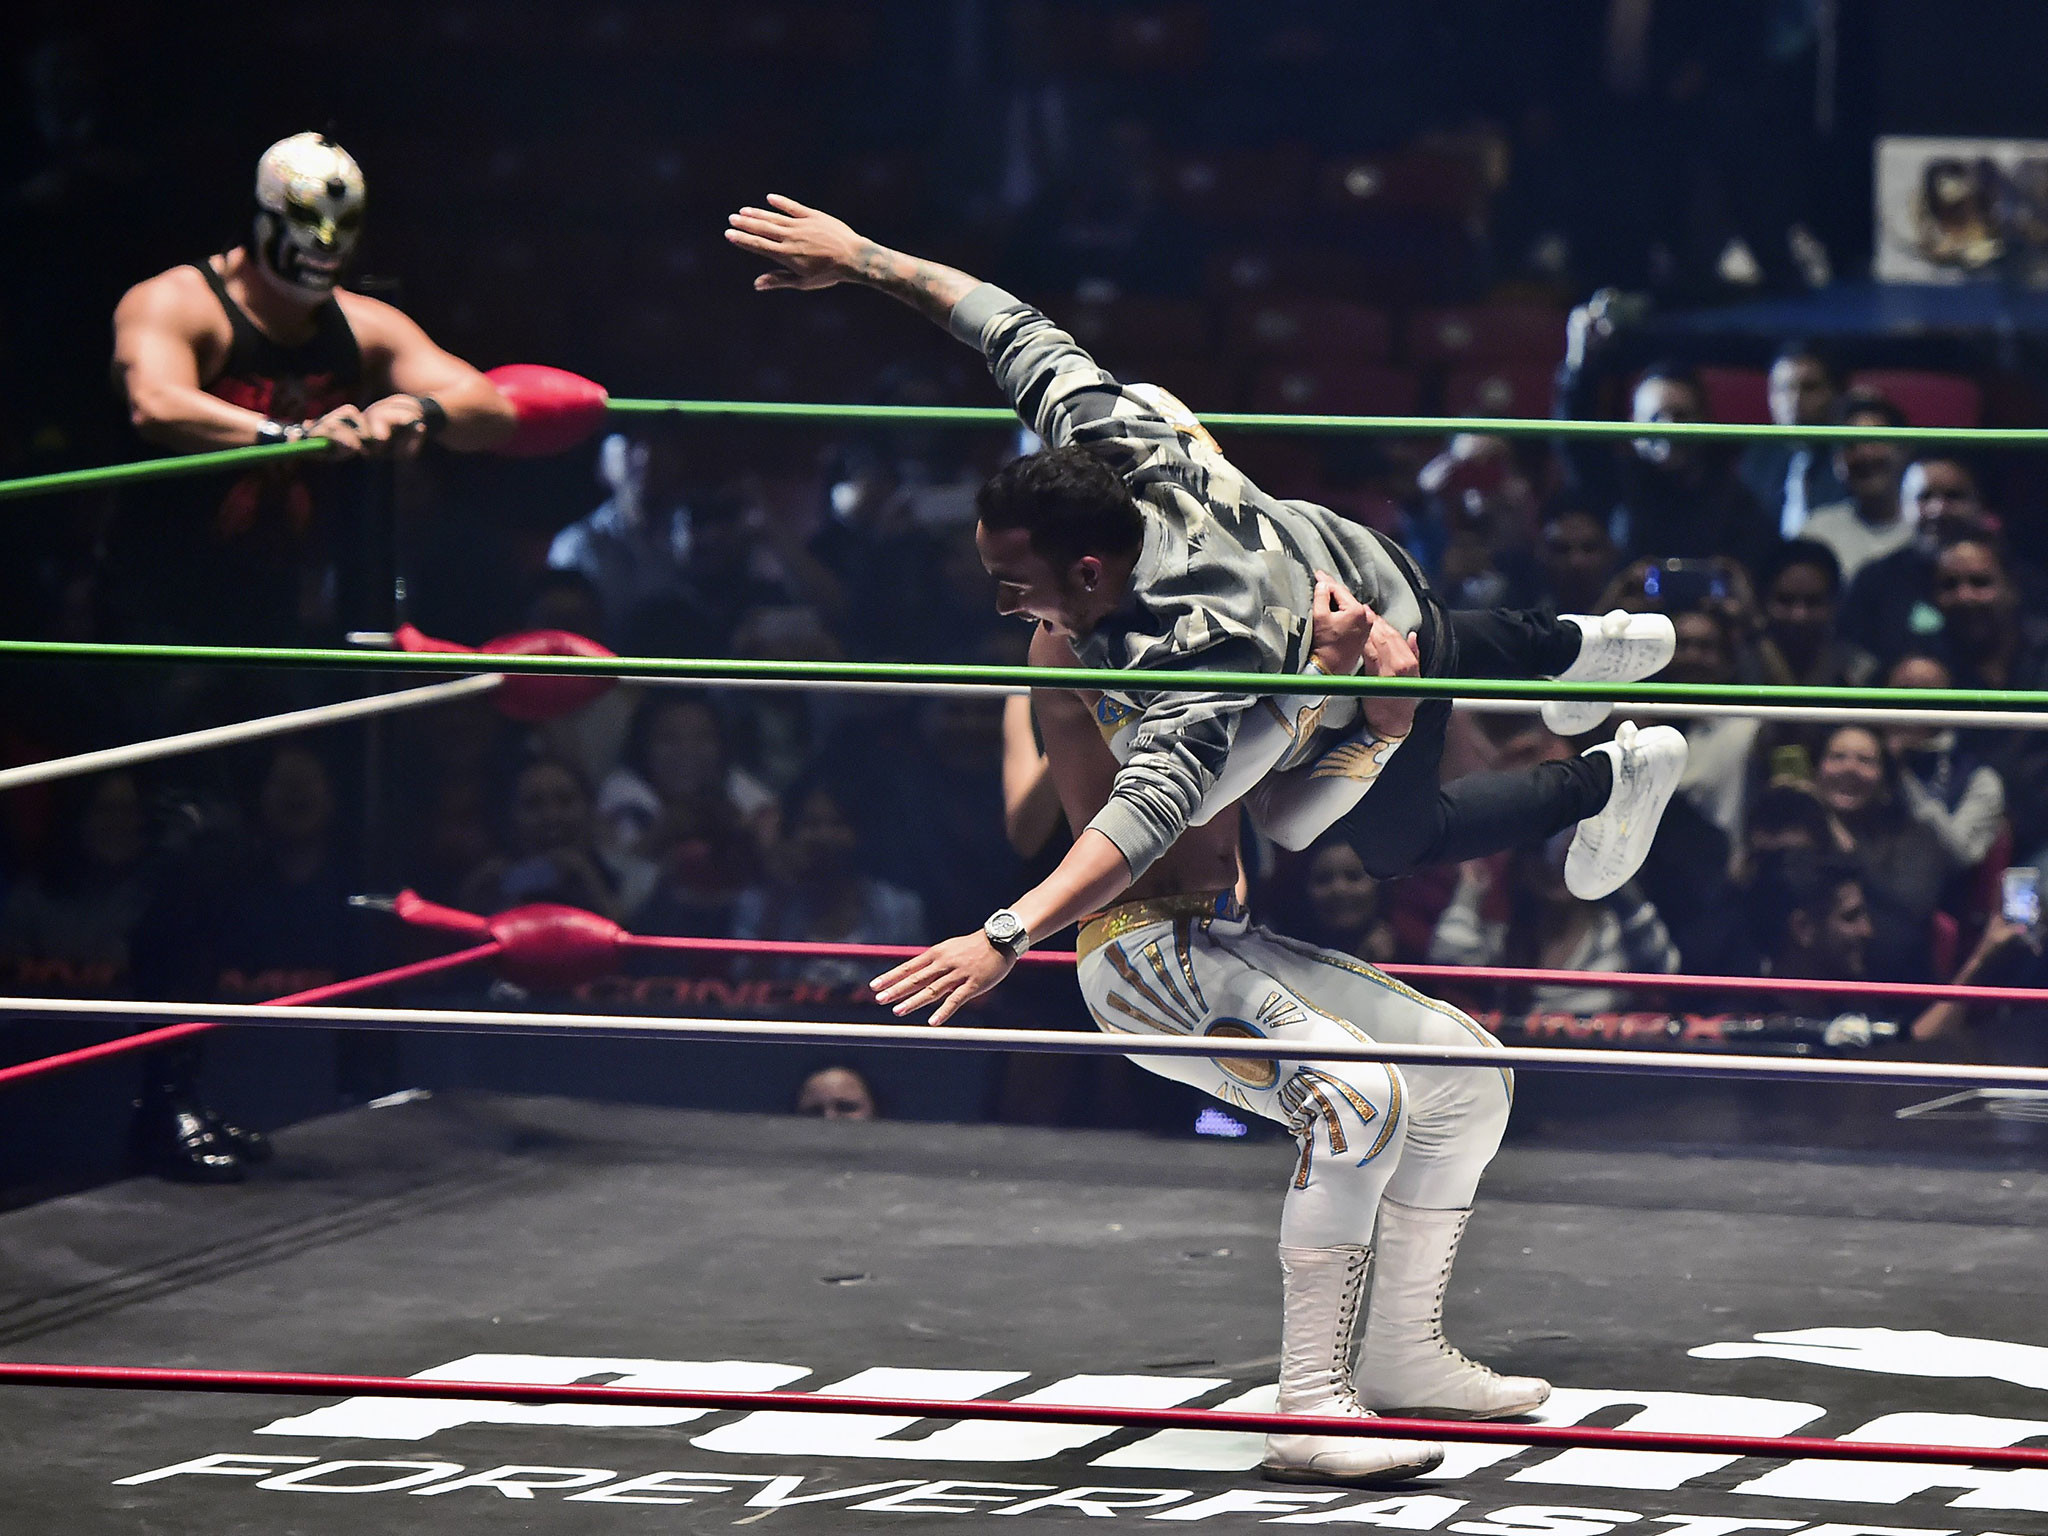 Lewis Hamilton storms wrestling ring and cross-body splashes opponent in  front of thousands in Mexico | The Independent